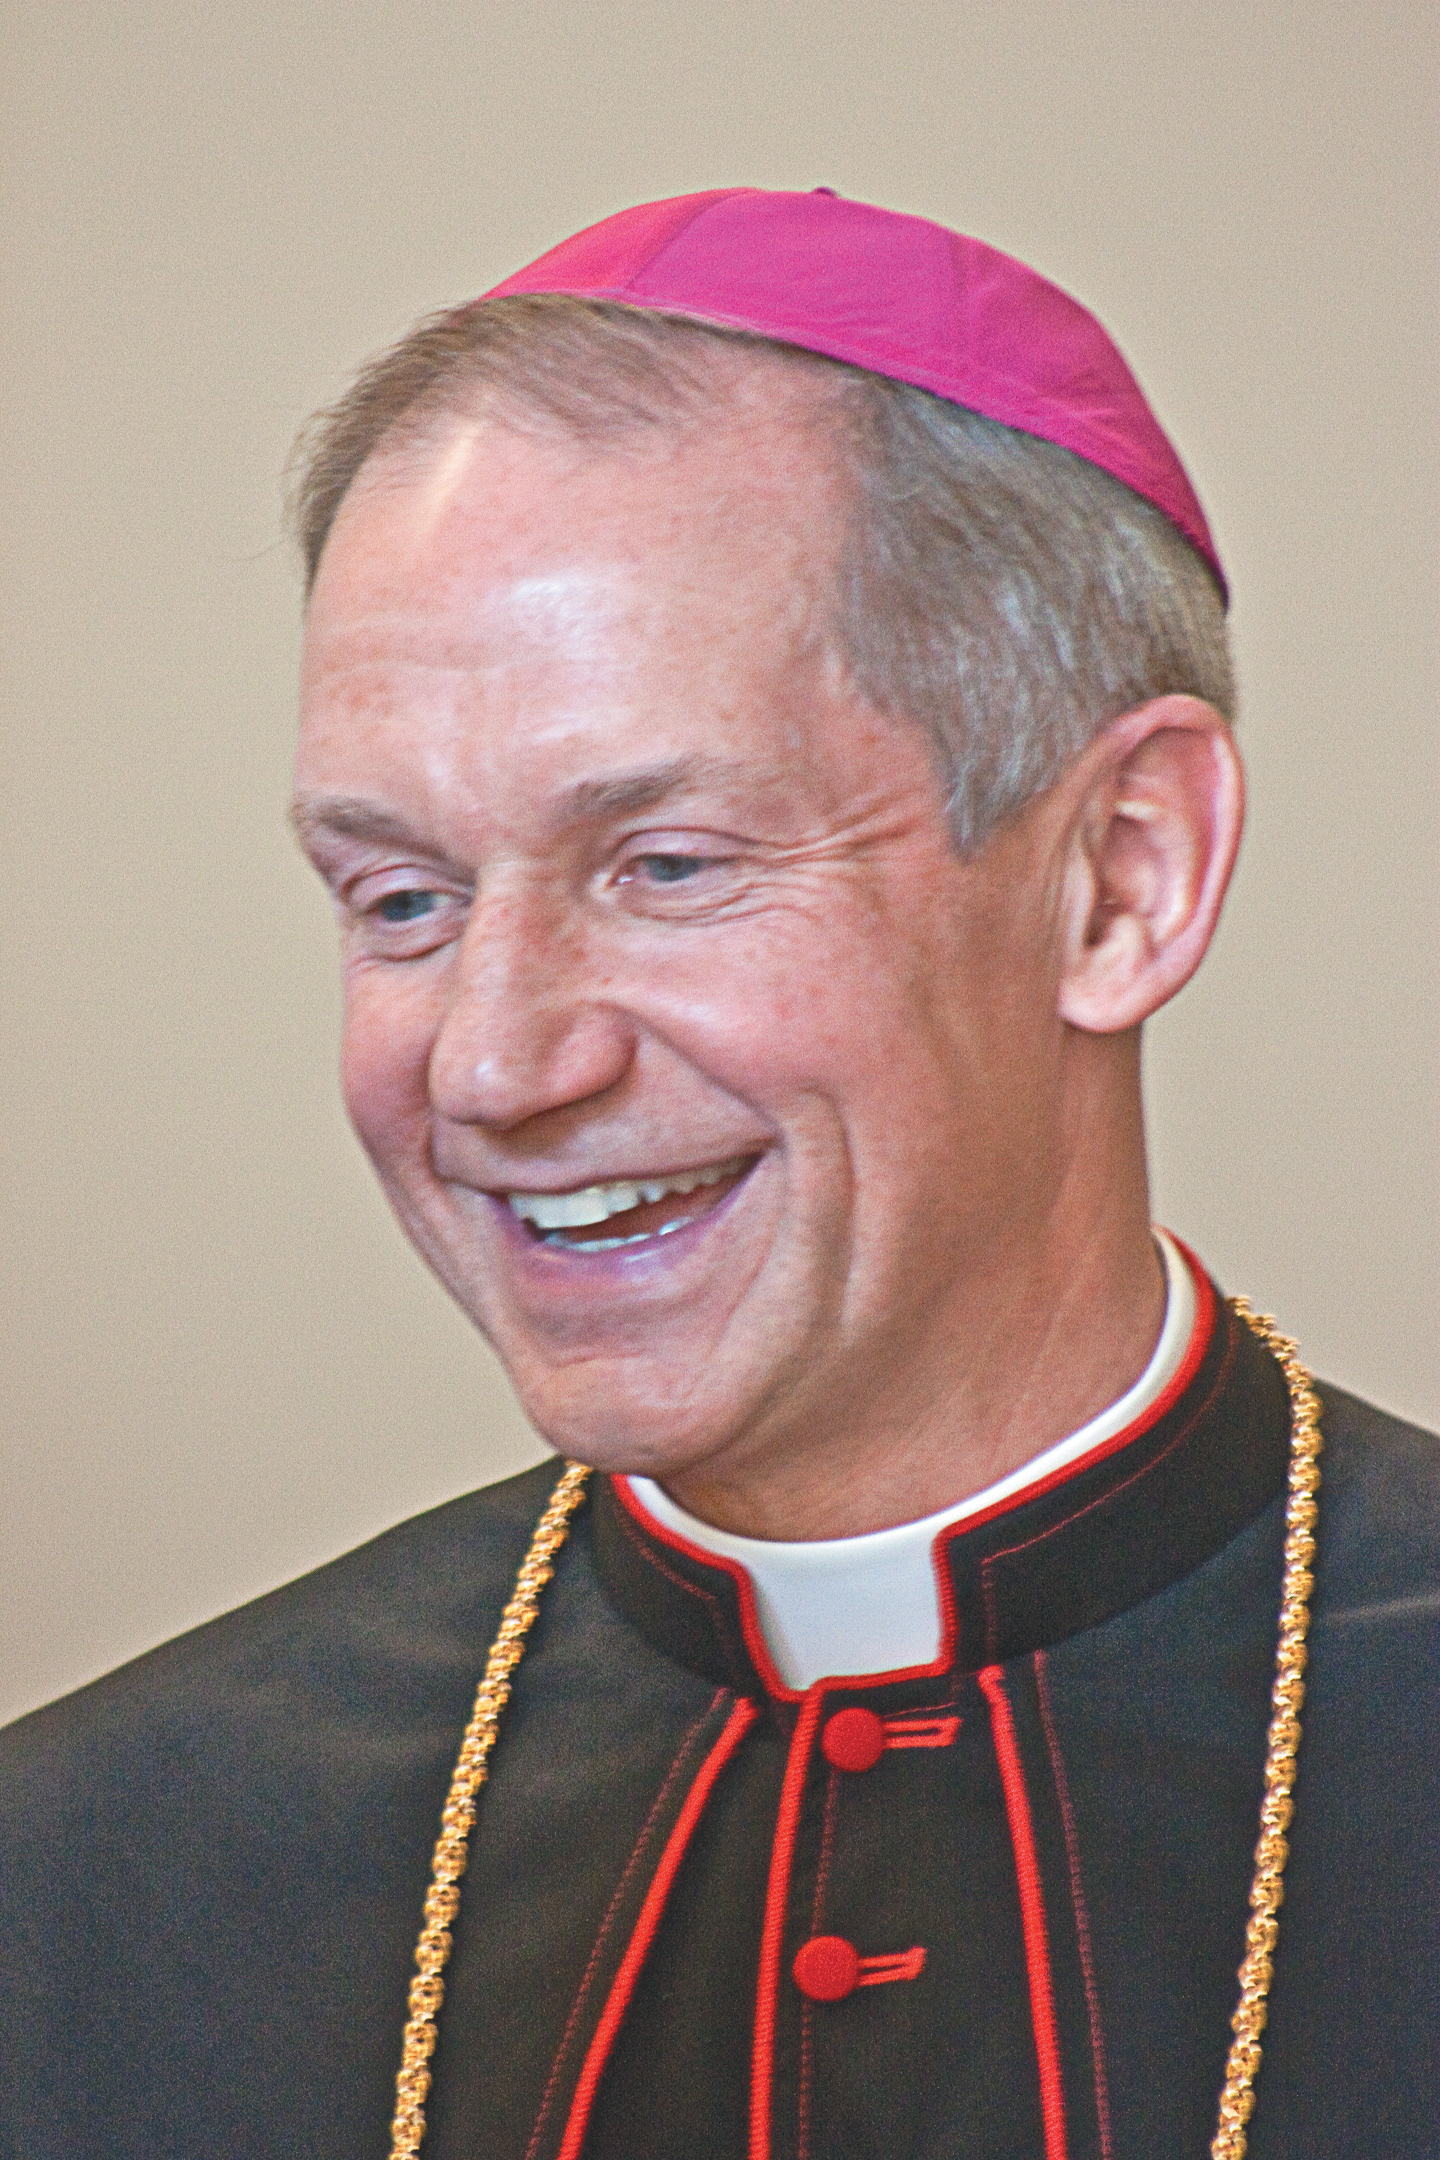 http://www.dio.org/uploads/images/departments/bishop/official_portrait/Bishop_Thomas_J_Paprocki.jpg